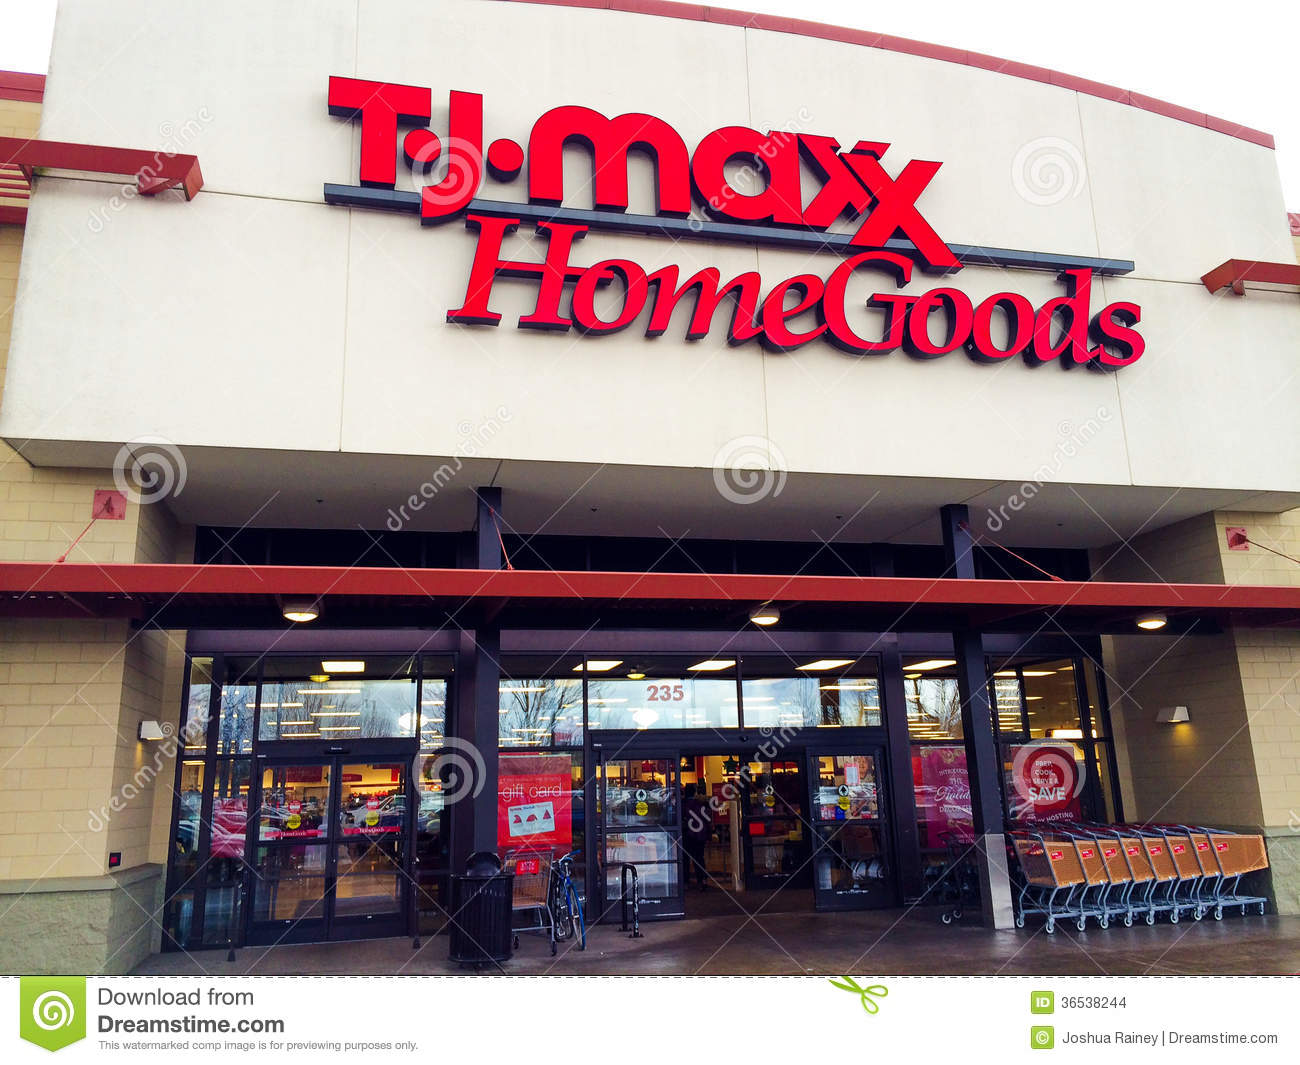 Editorial Stock Photo  Download TJ Maxx Home Goods. TJ Maxx Home Goods Eugene  OR Editorial Stock Image   Image  36538244